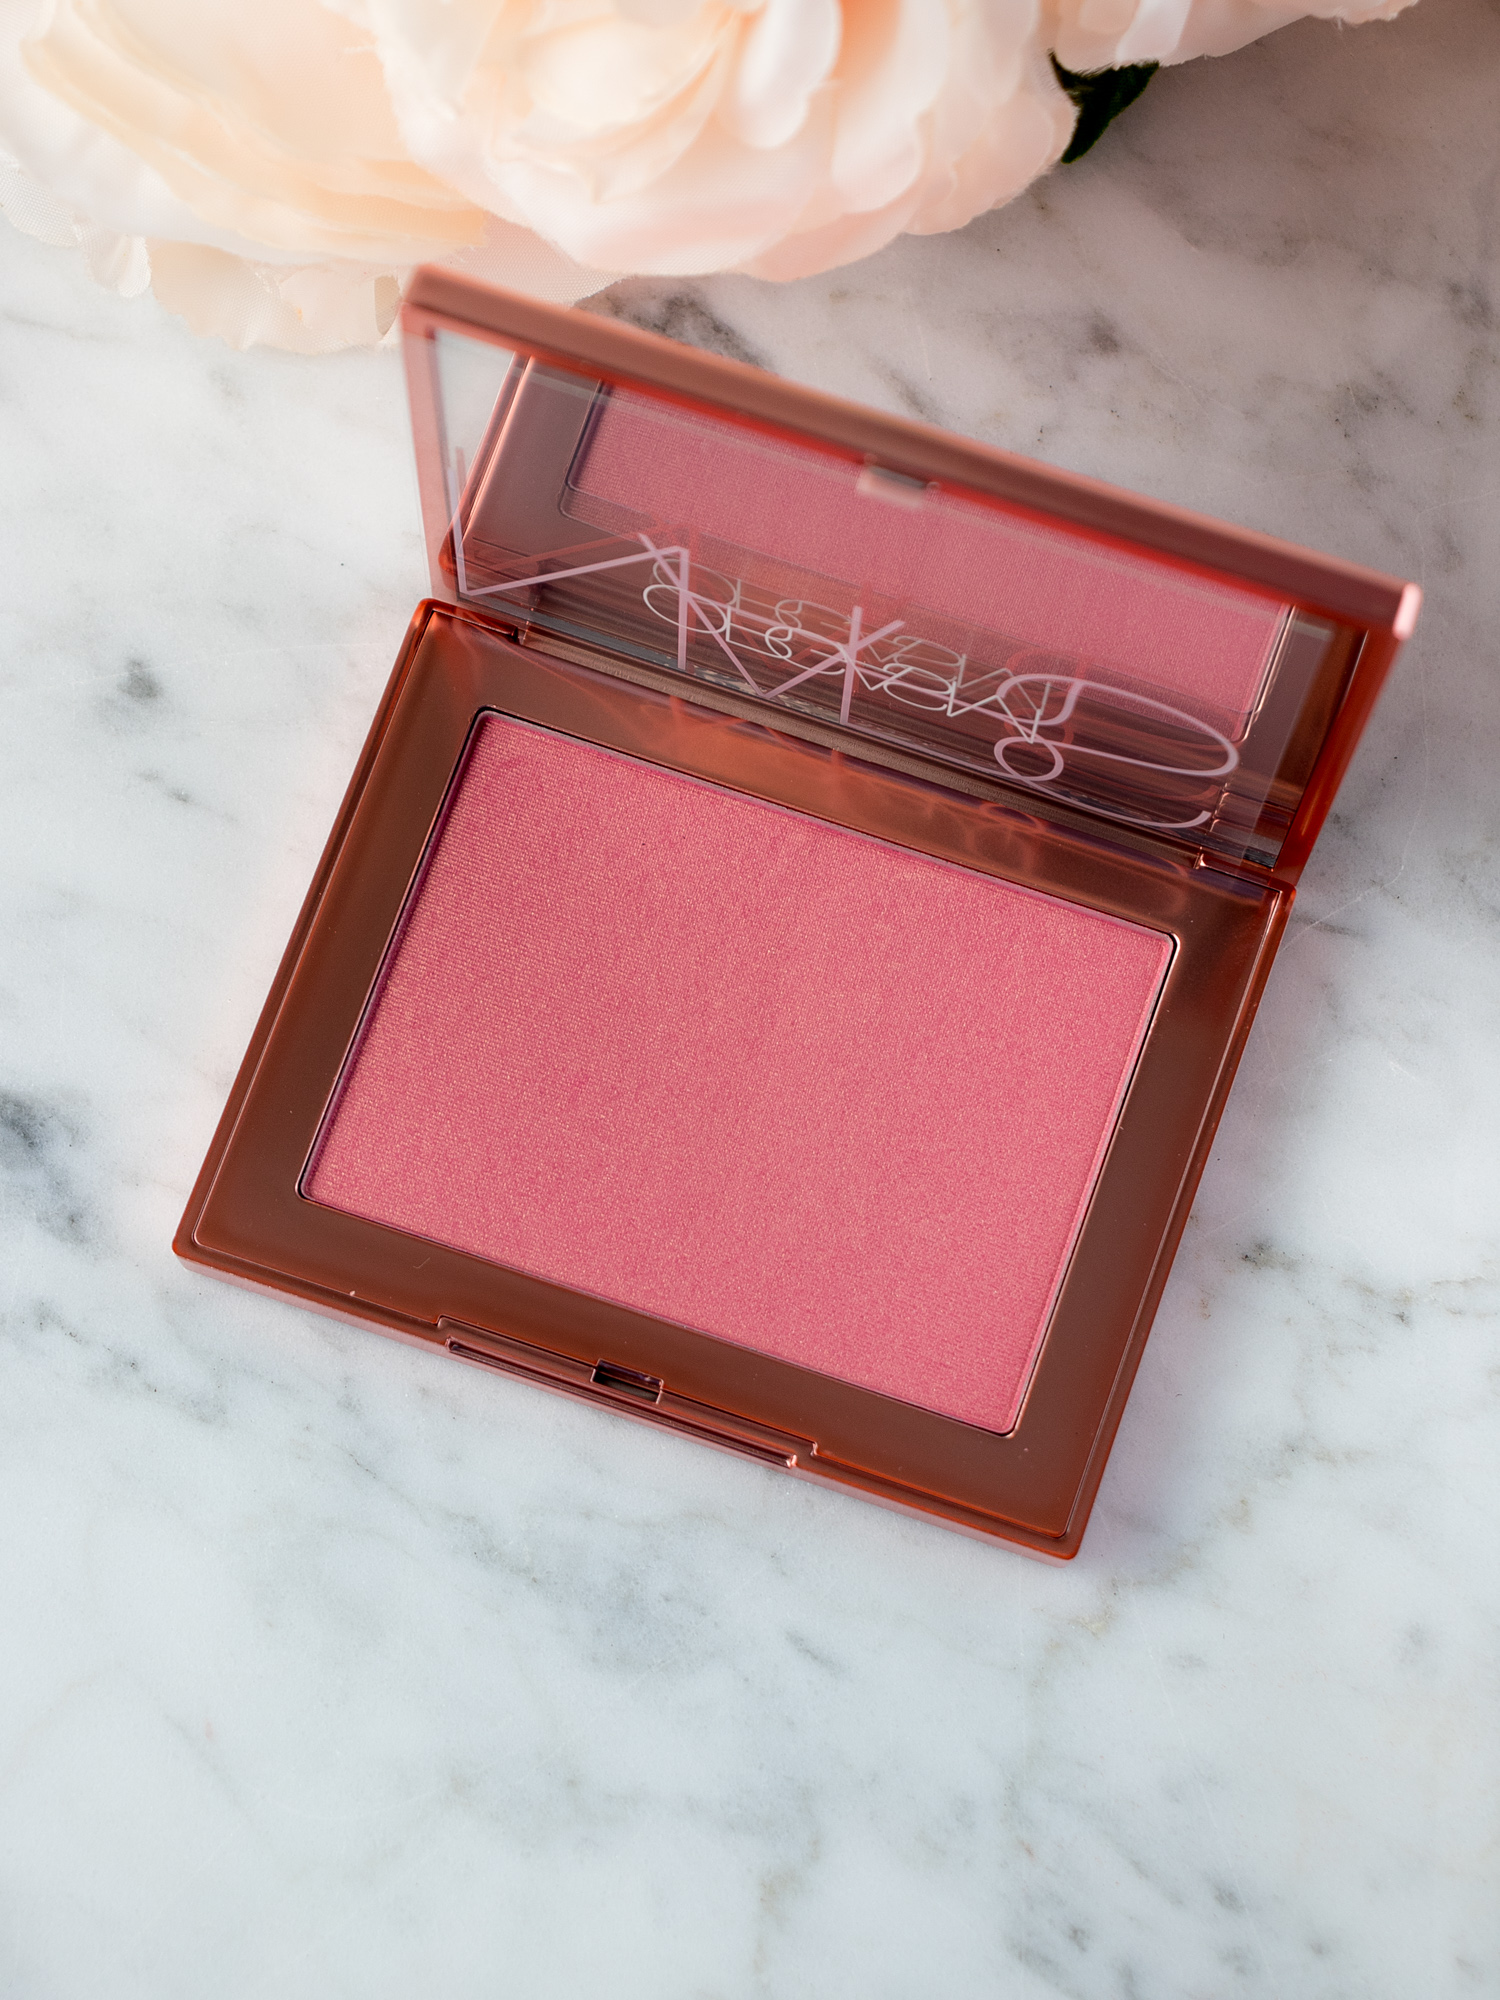 NARS Orgasm Collection 2019: NARS Orgasm Oversized Blush